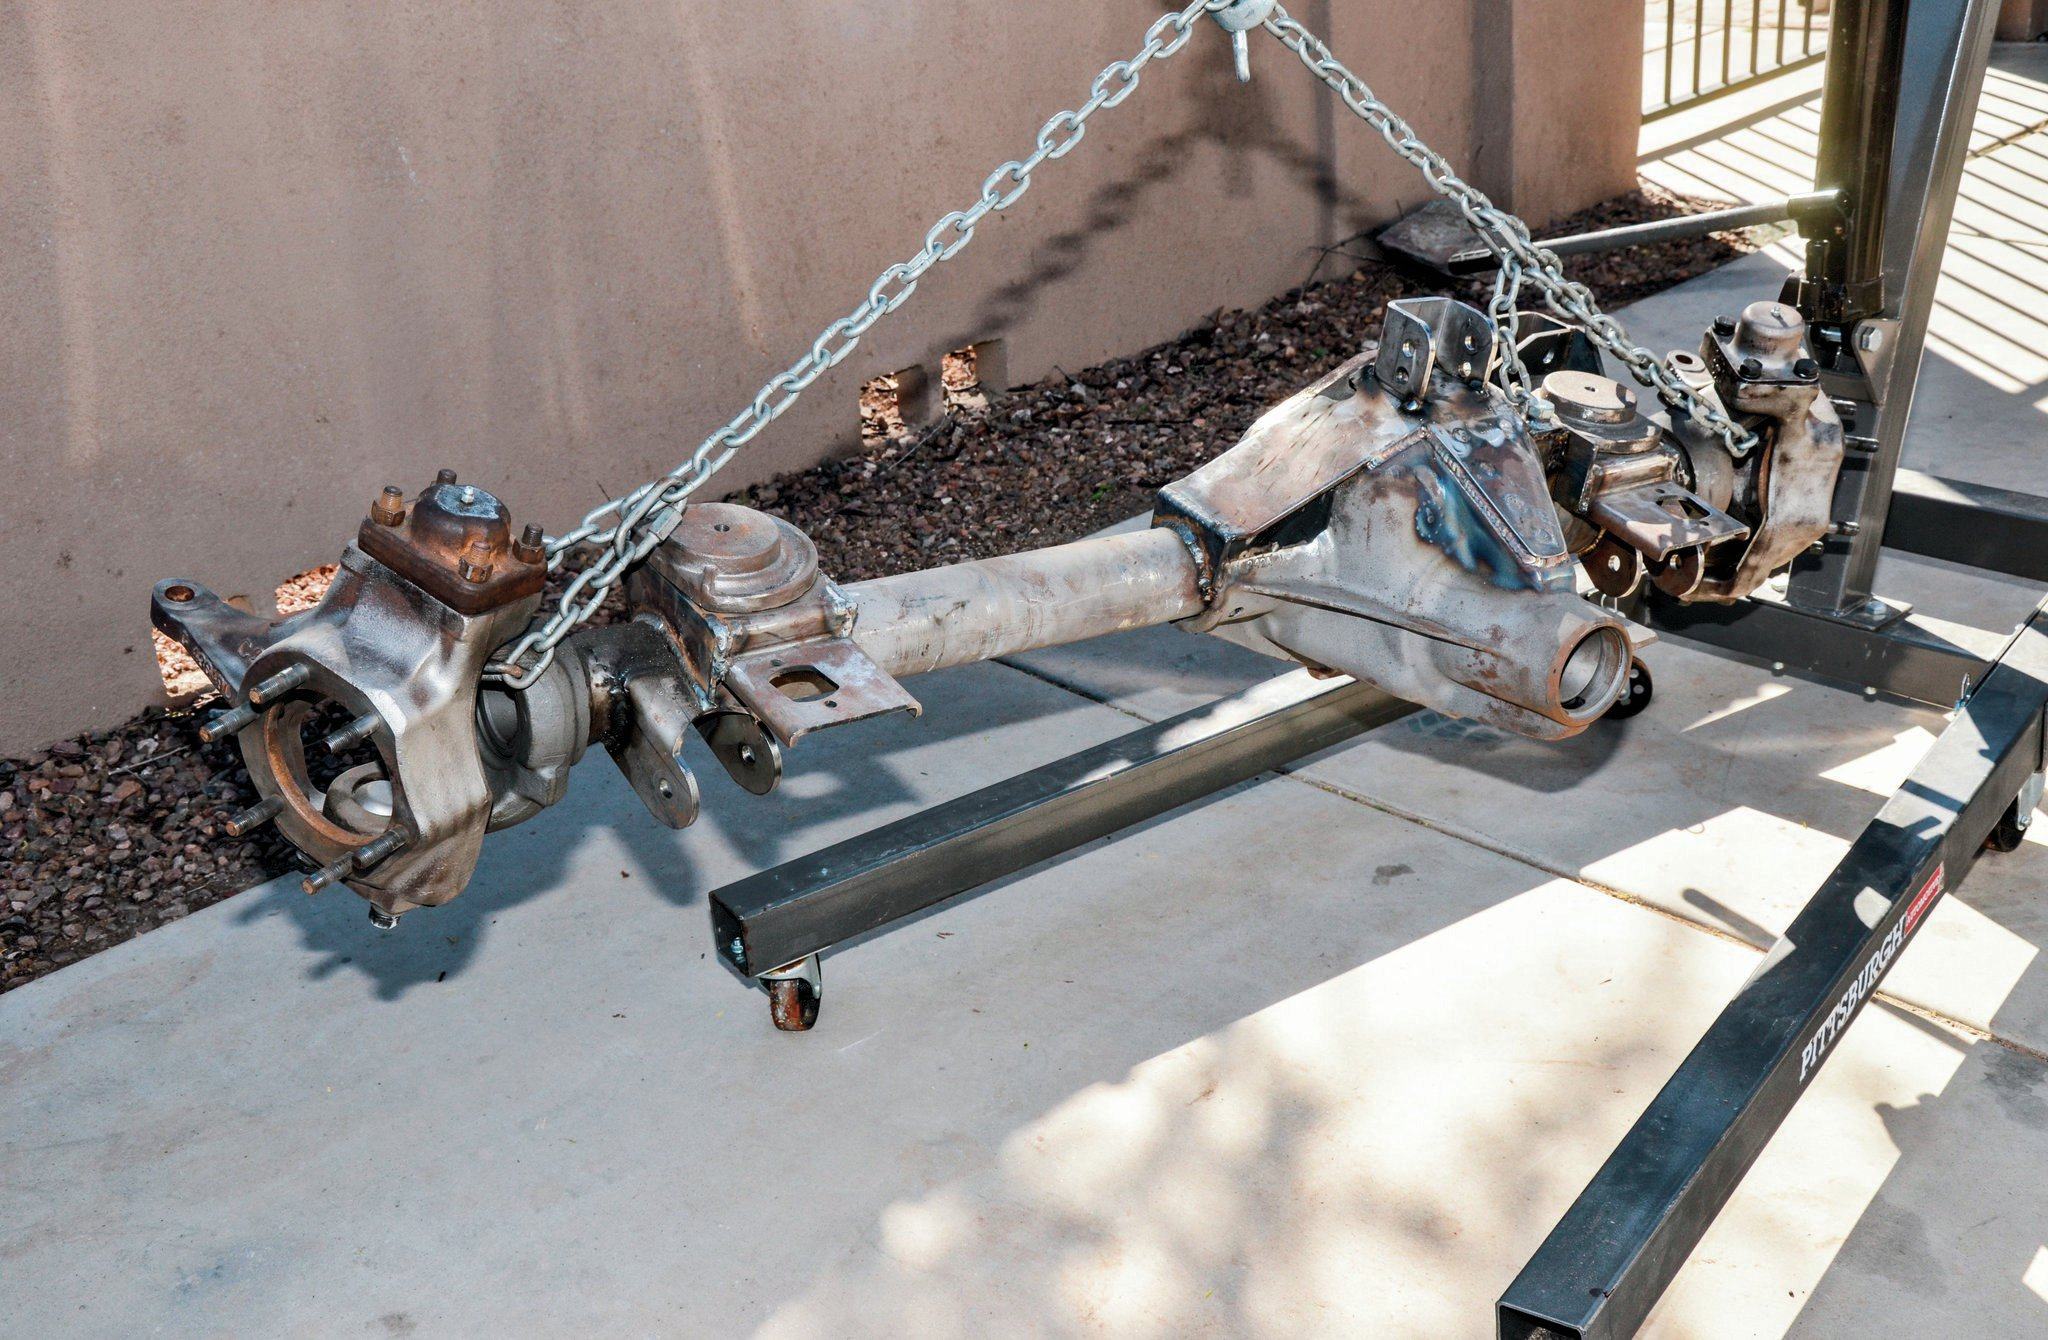 Once the suspension was cycled and flexed, we pulled the front axle. We needed to take the axle back to Rob Bonney Fab for some more TIG welding to the Dana 60 cast steel housing. The axle is starting to get heavy so we used our engine hoist to move the axle out of the garage and into the back of our truck.